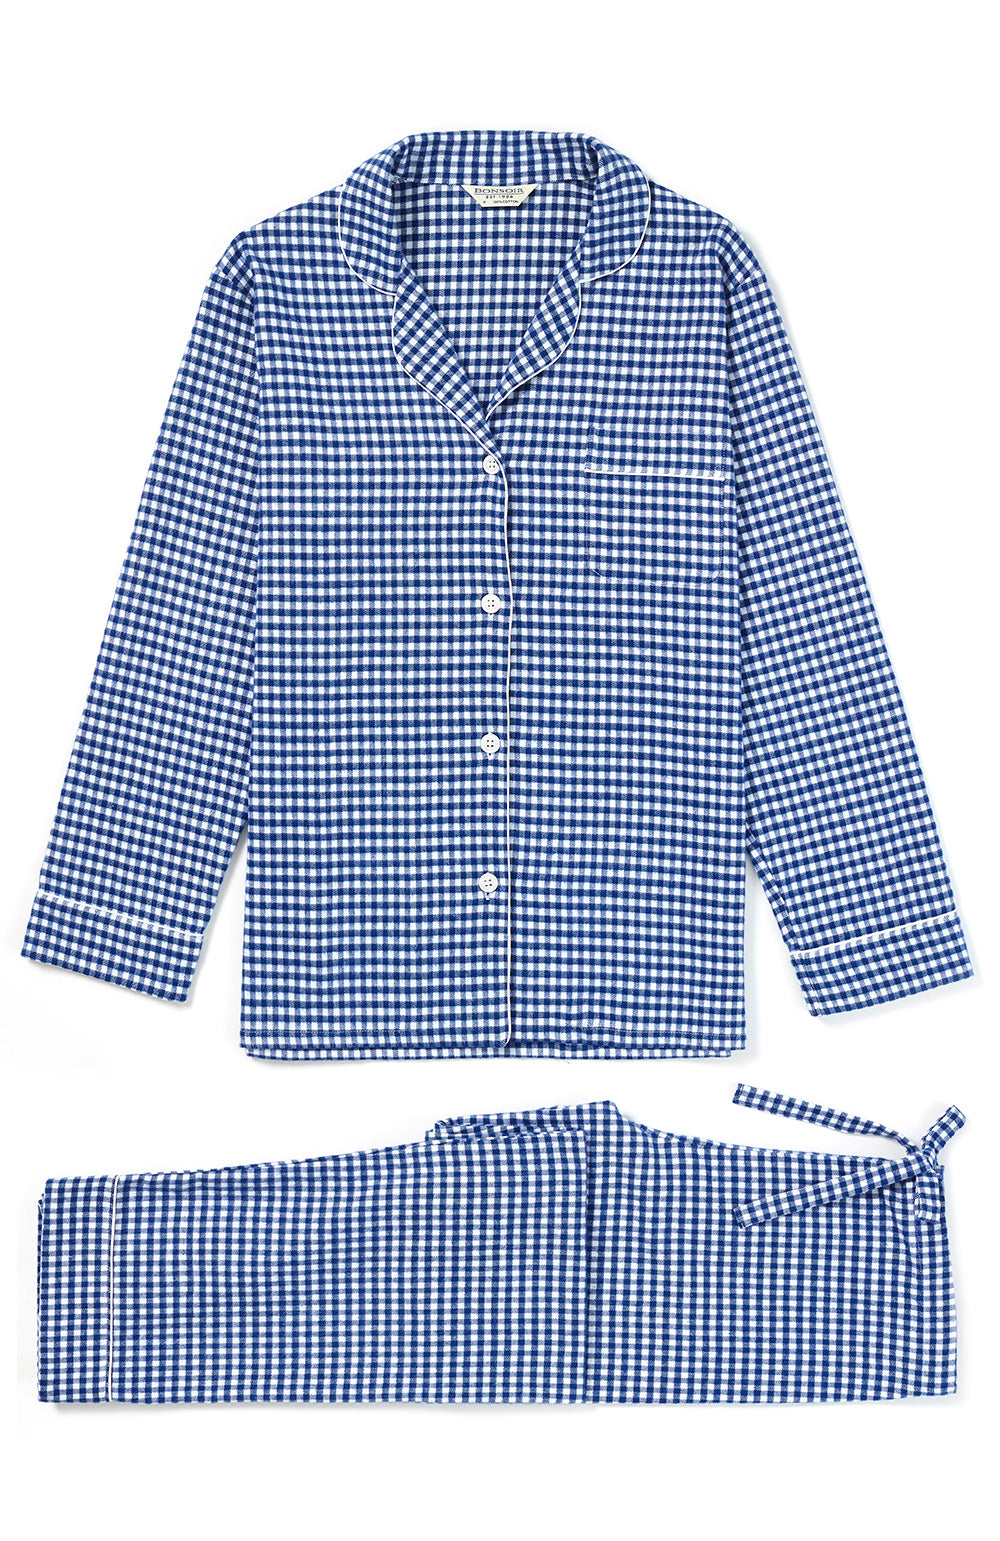 Women's Brushed Cotton Navy Gingham Pyjamas | Bonsoir of London